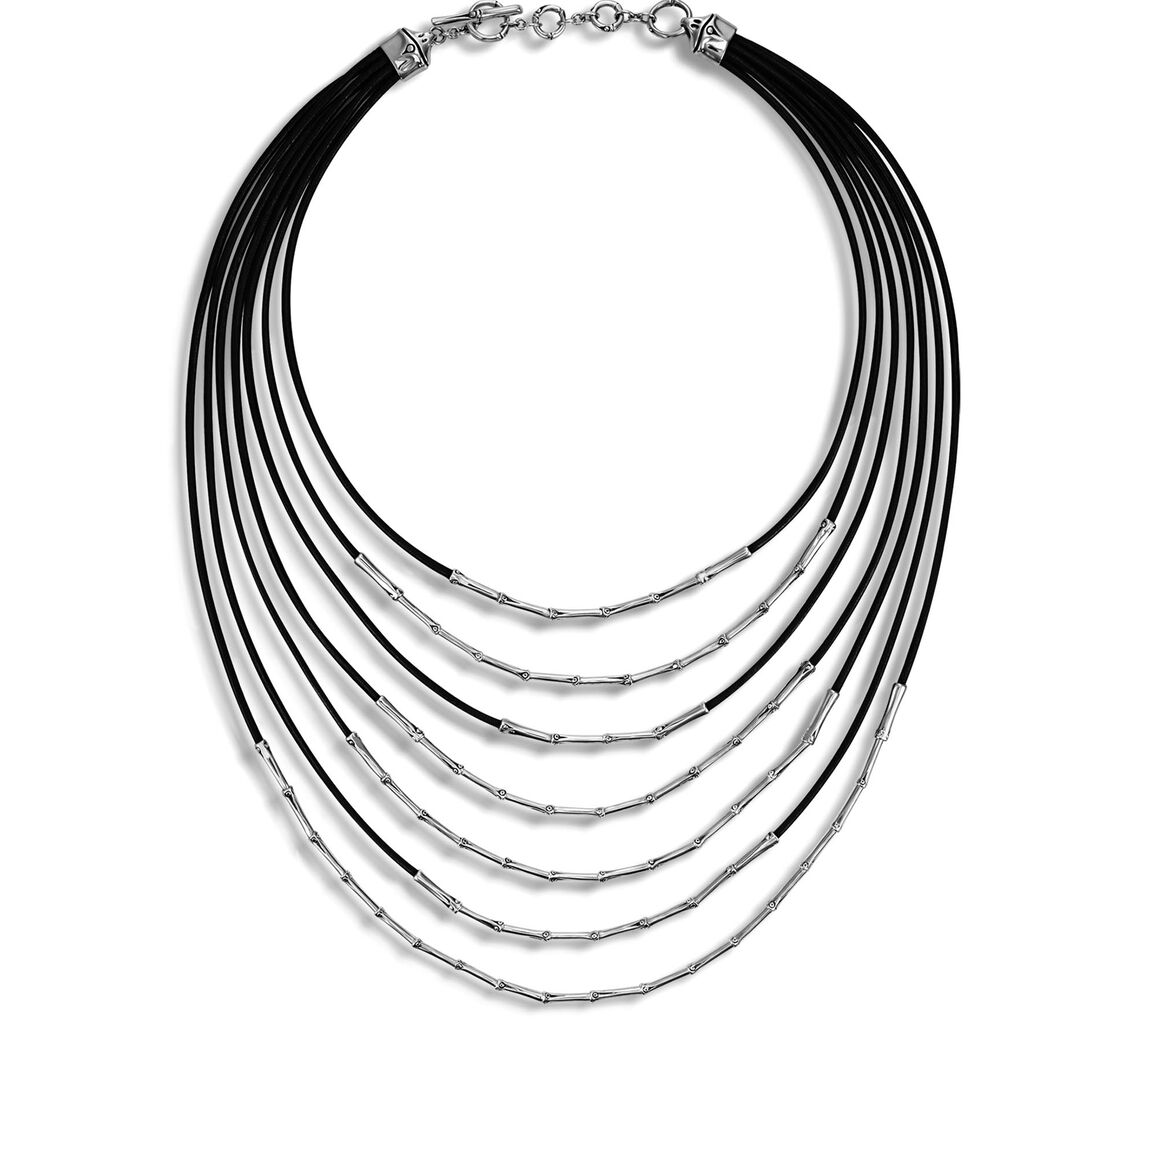 Bamboo Bib Necklace in Silver and Leather